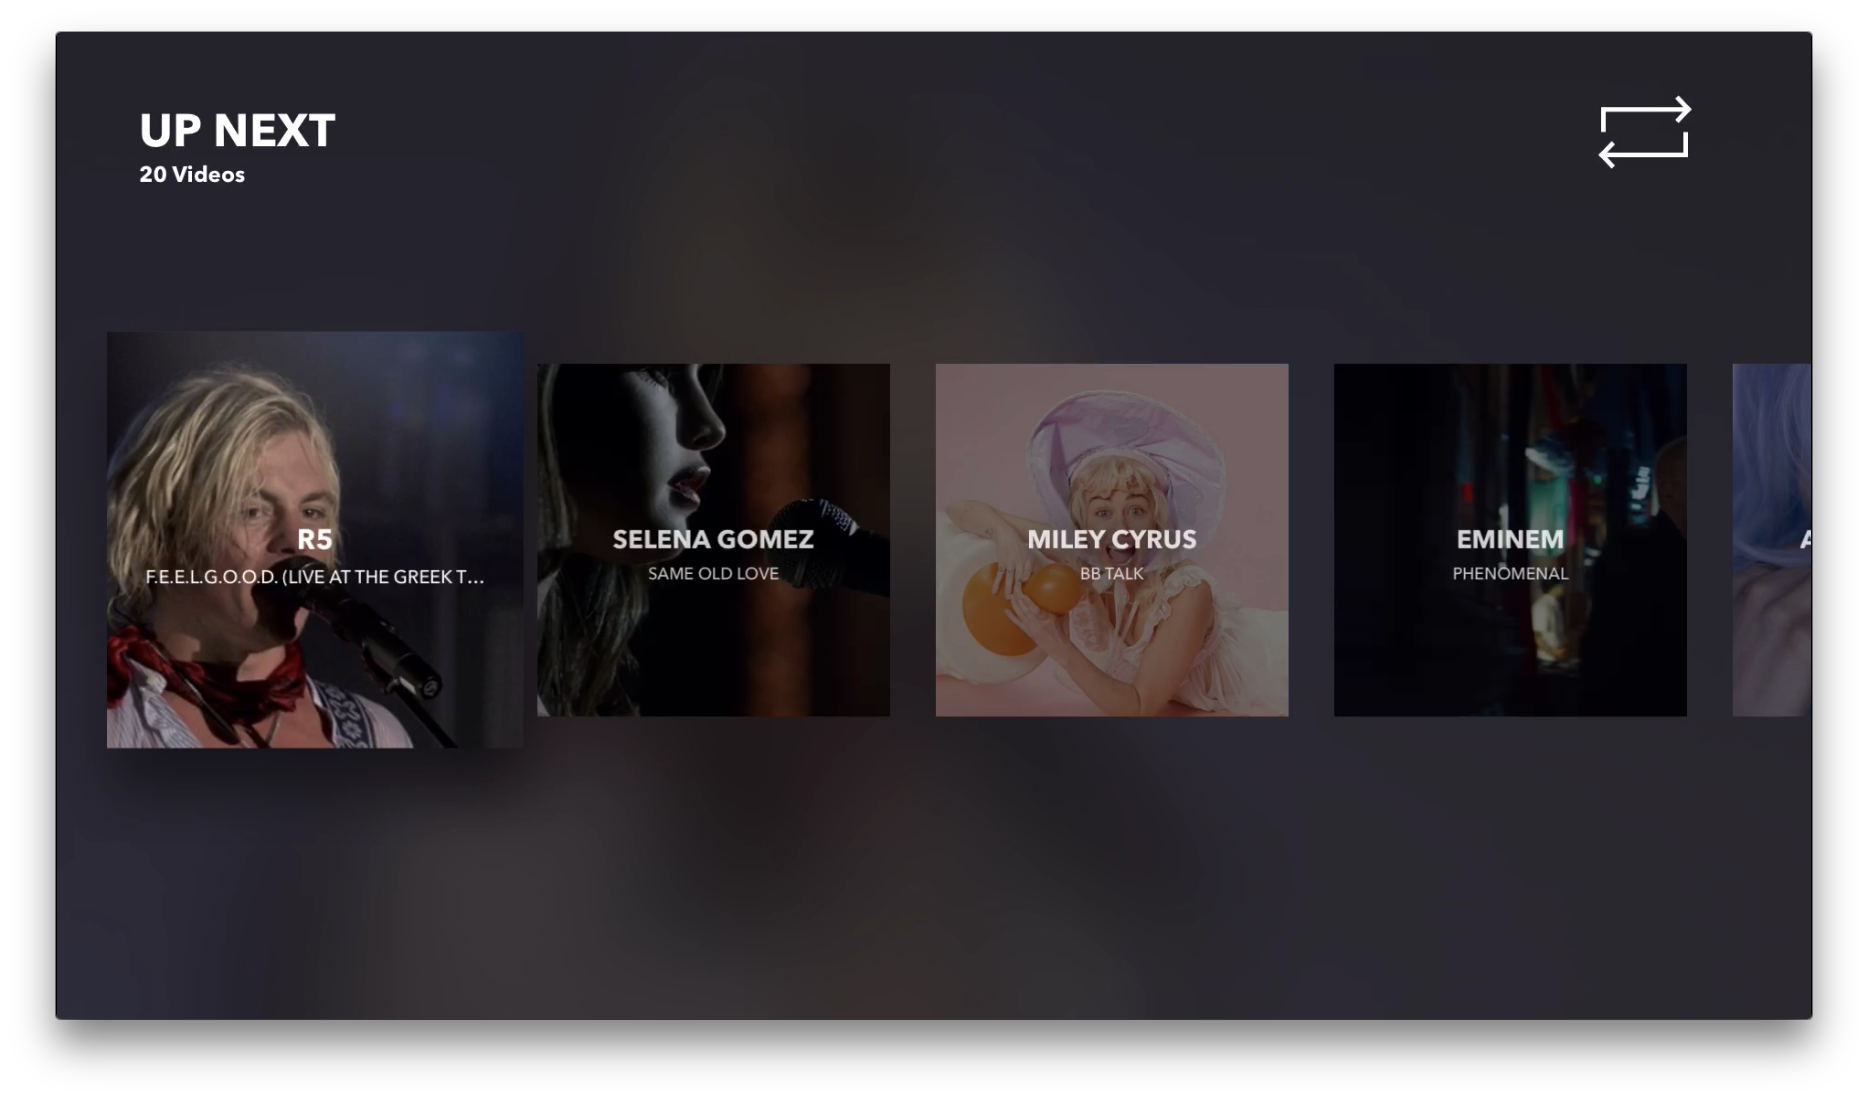 Vevo Apple TV 2